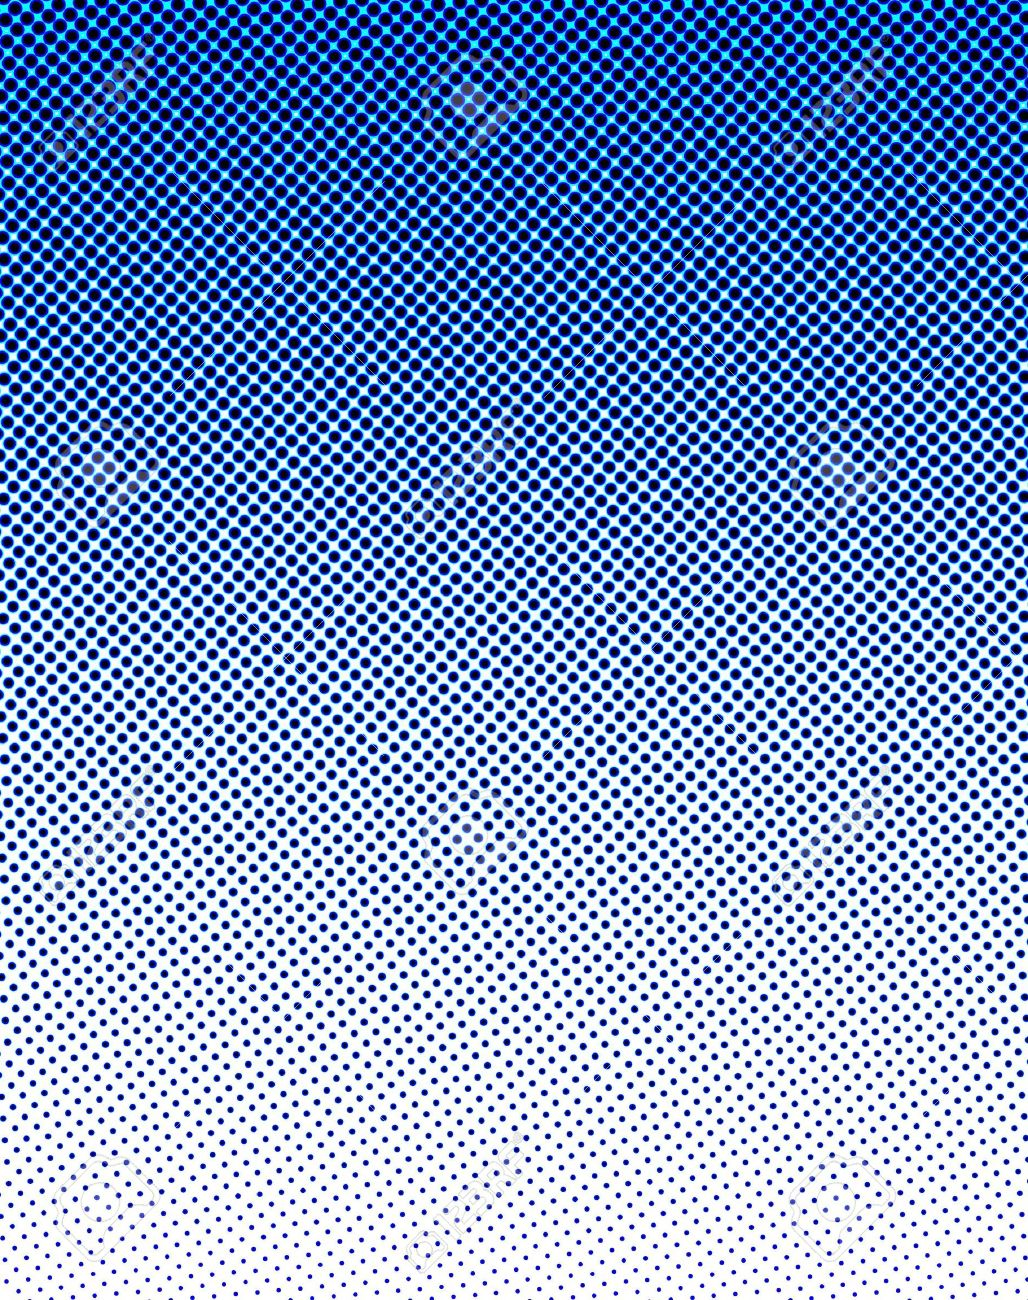 Comic Book Background Dots